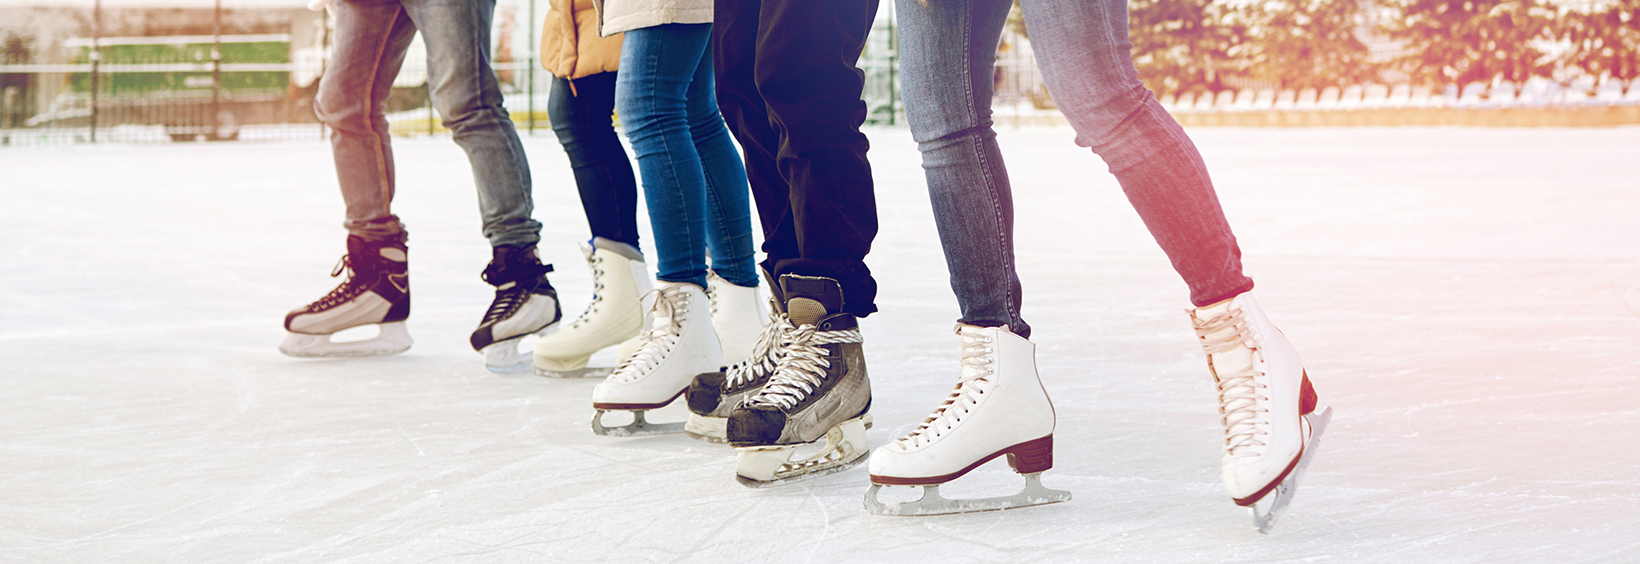 Ice Skating in the New York Area